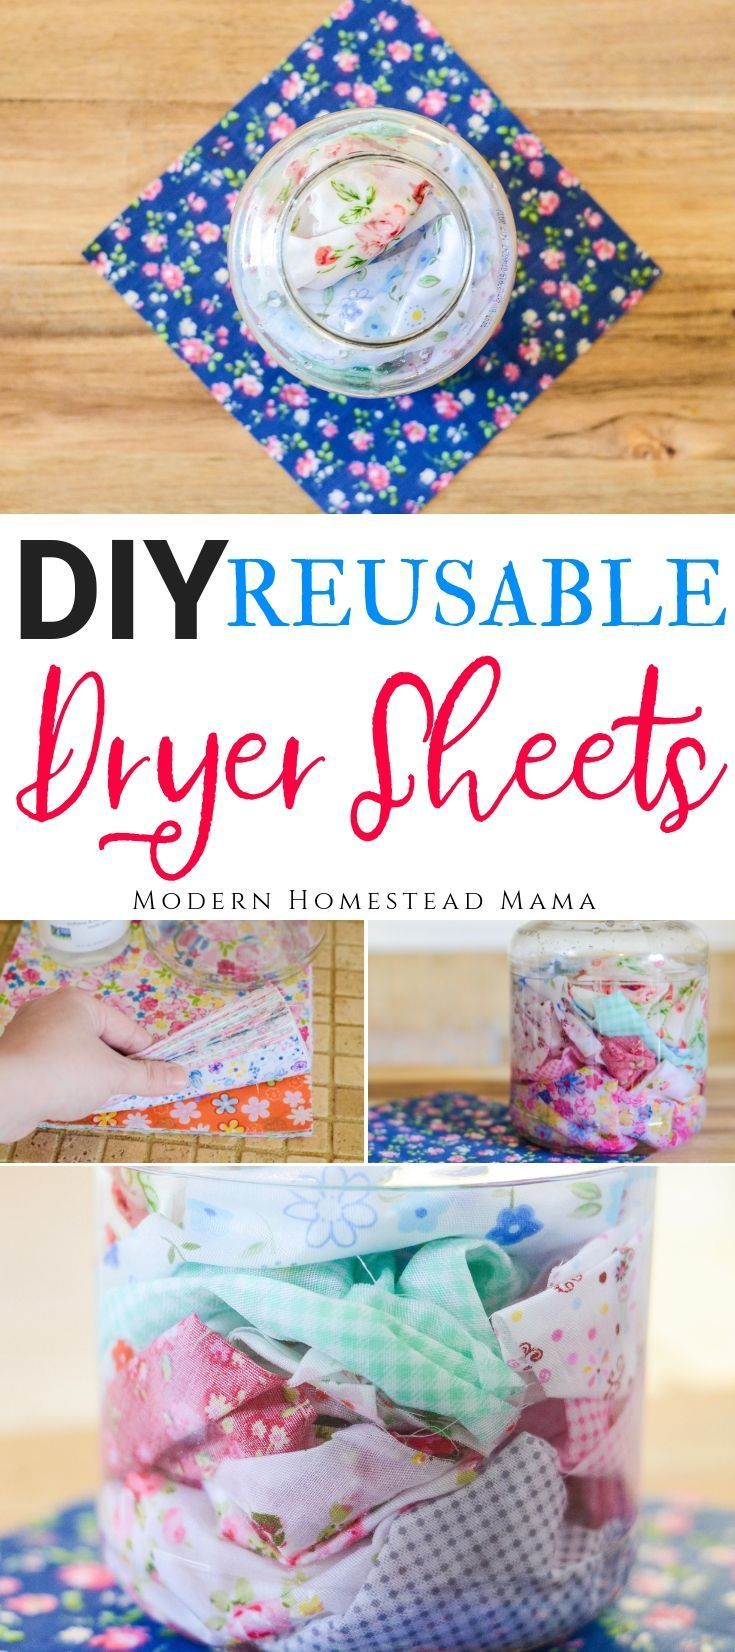 Diy dryer sheets reusable and natural homemade laundry